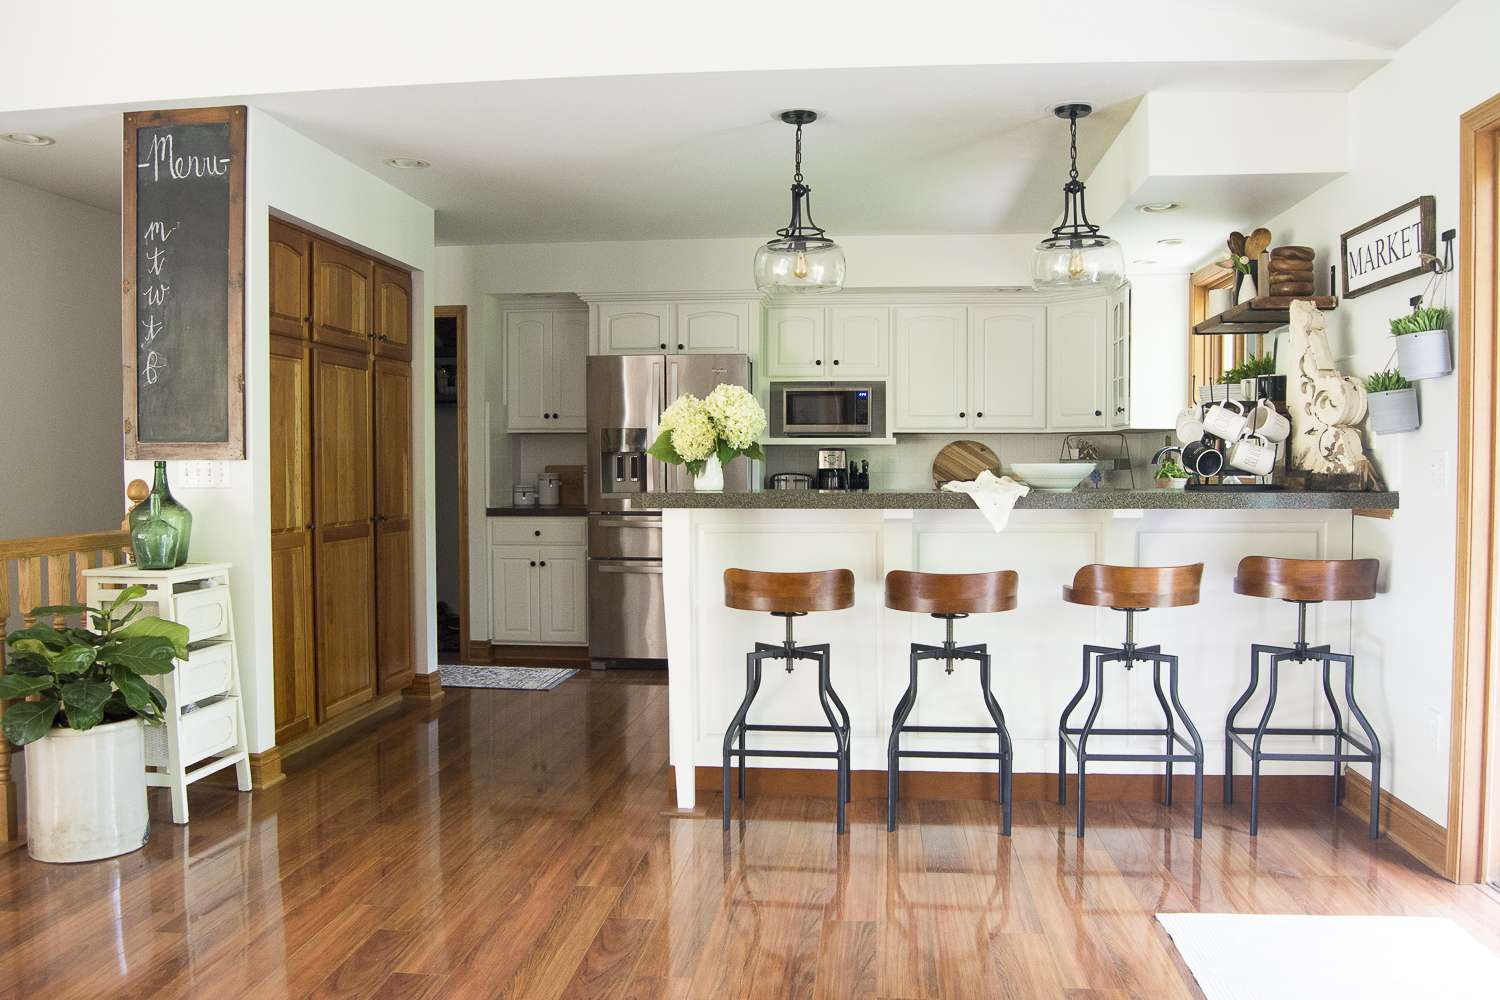 Kitchen remodel on a budget the final reveal of our budget friendly kitchen remodel along